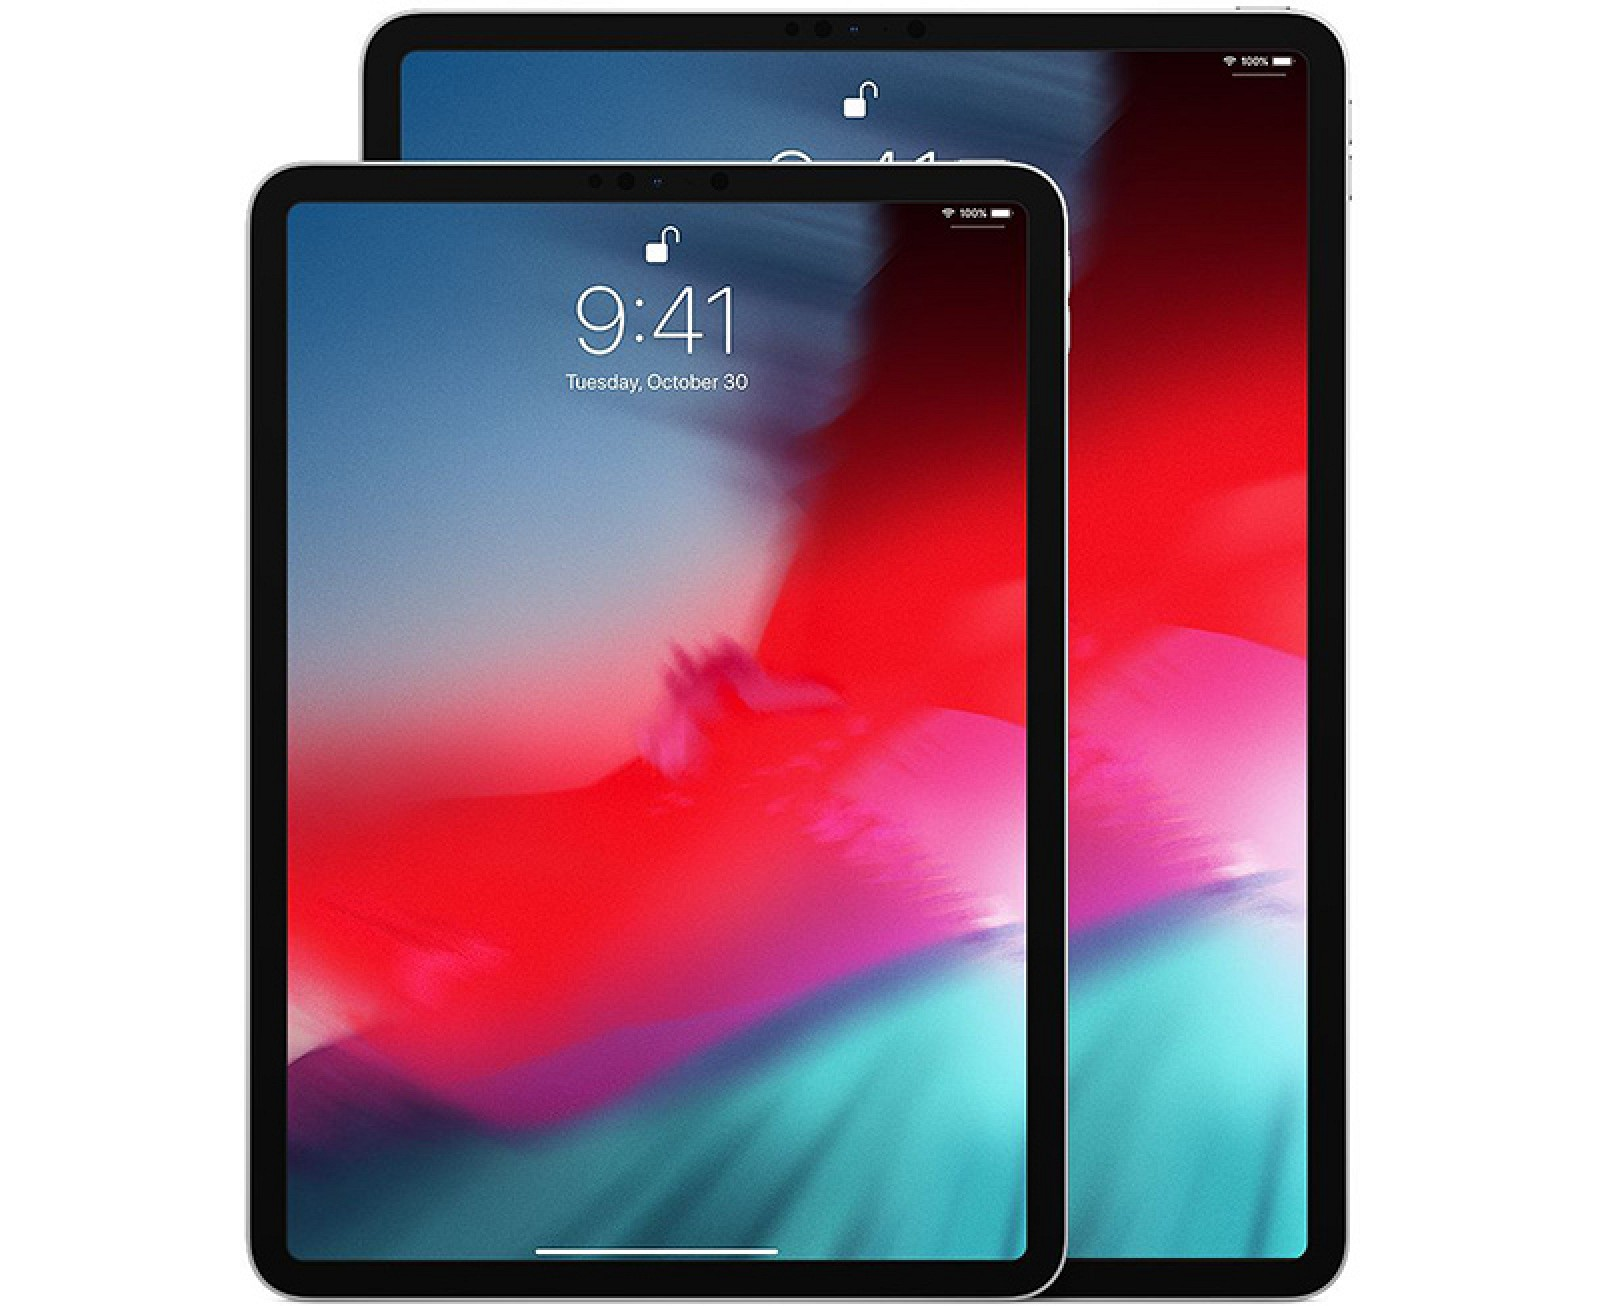 Apple Rumored to Be Developing 5G iPad Pro With mmWave Support